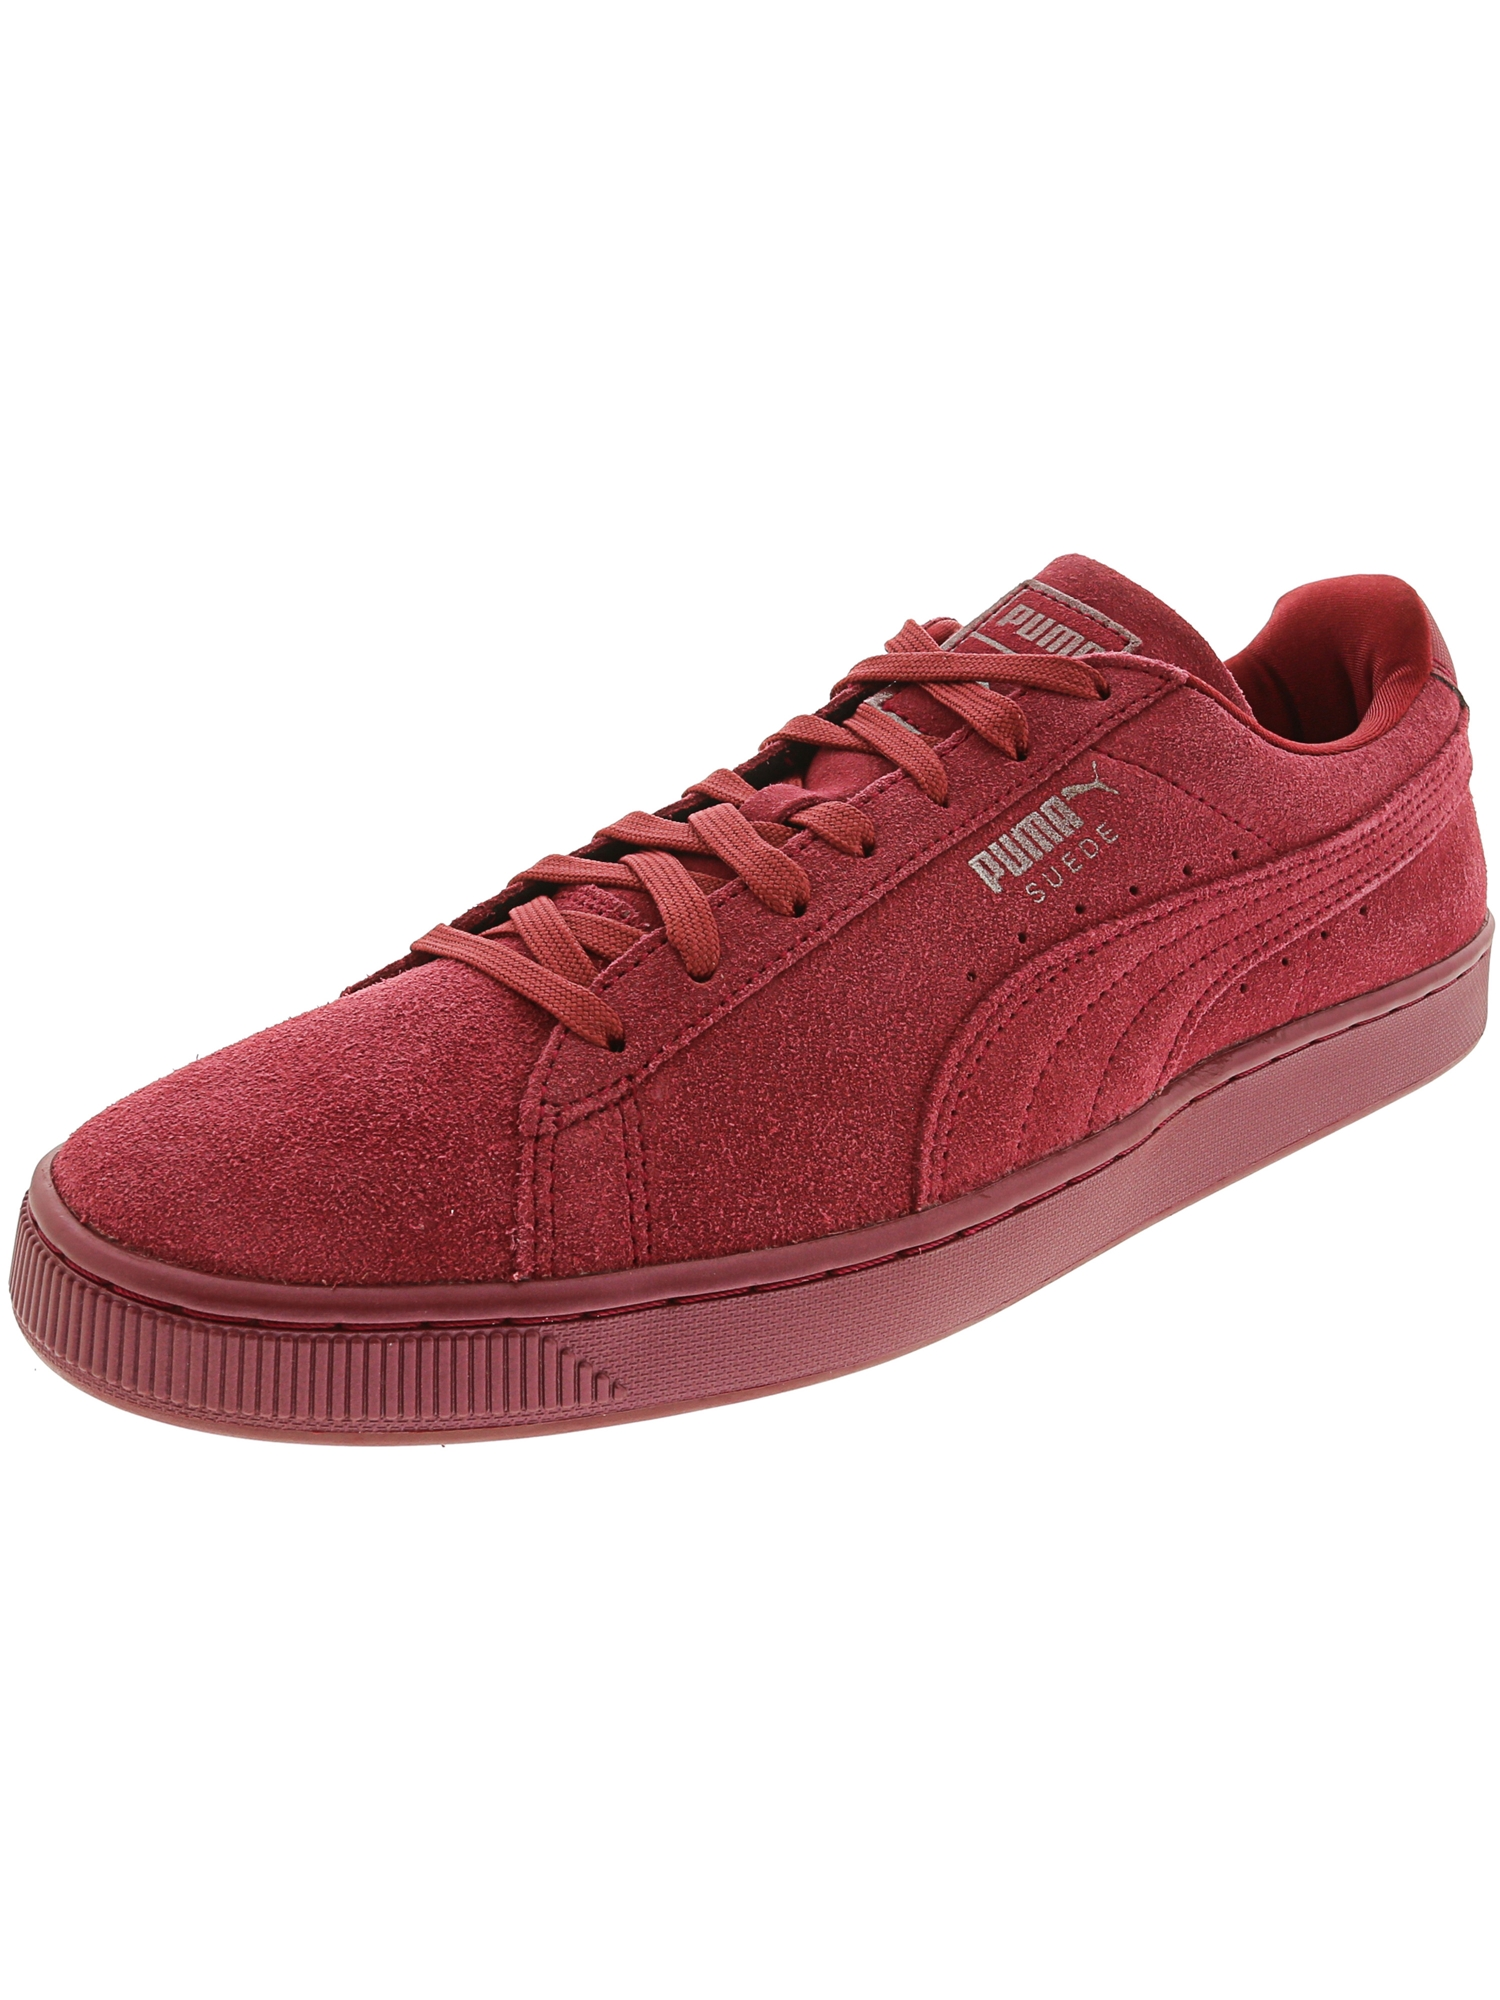 Puma Men's Suede Classic Anodized Tibetan Red / Ankle-High Fashion Sneaker - 11.5M